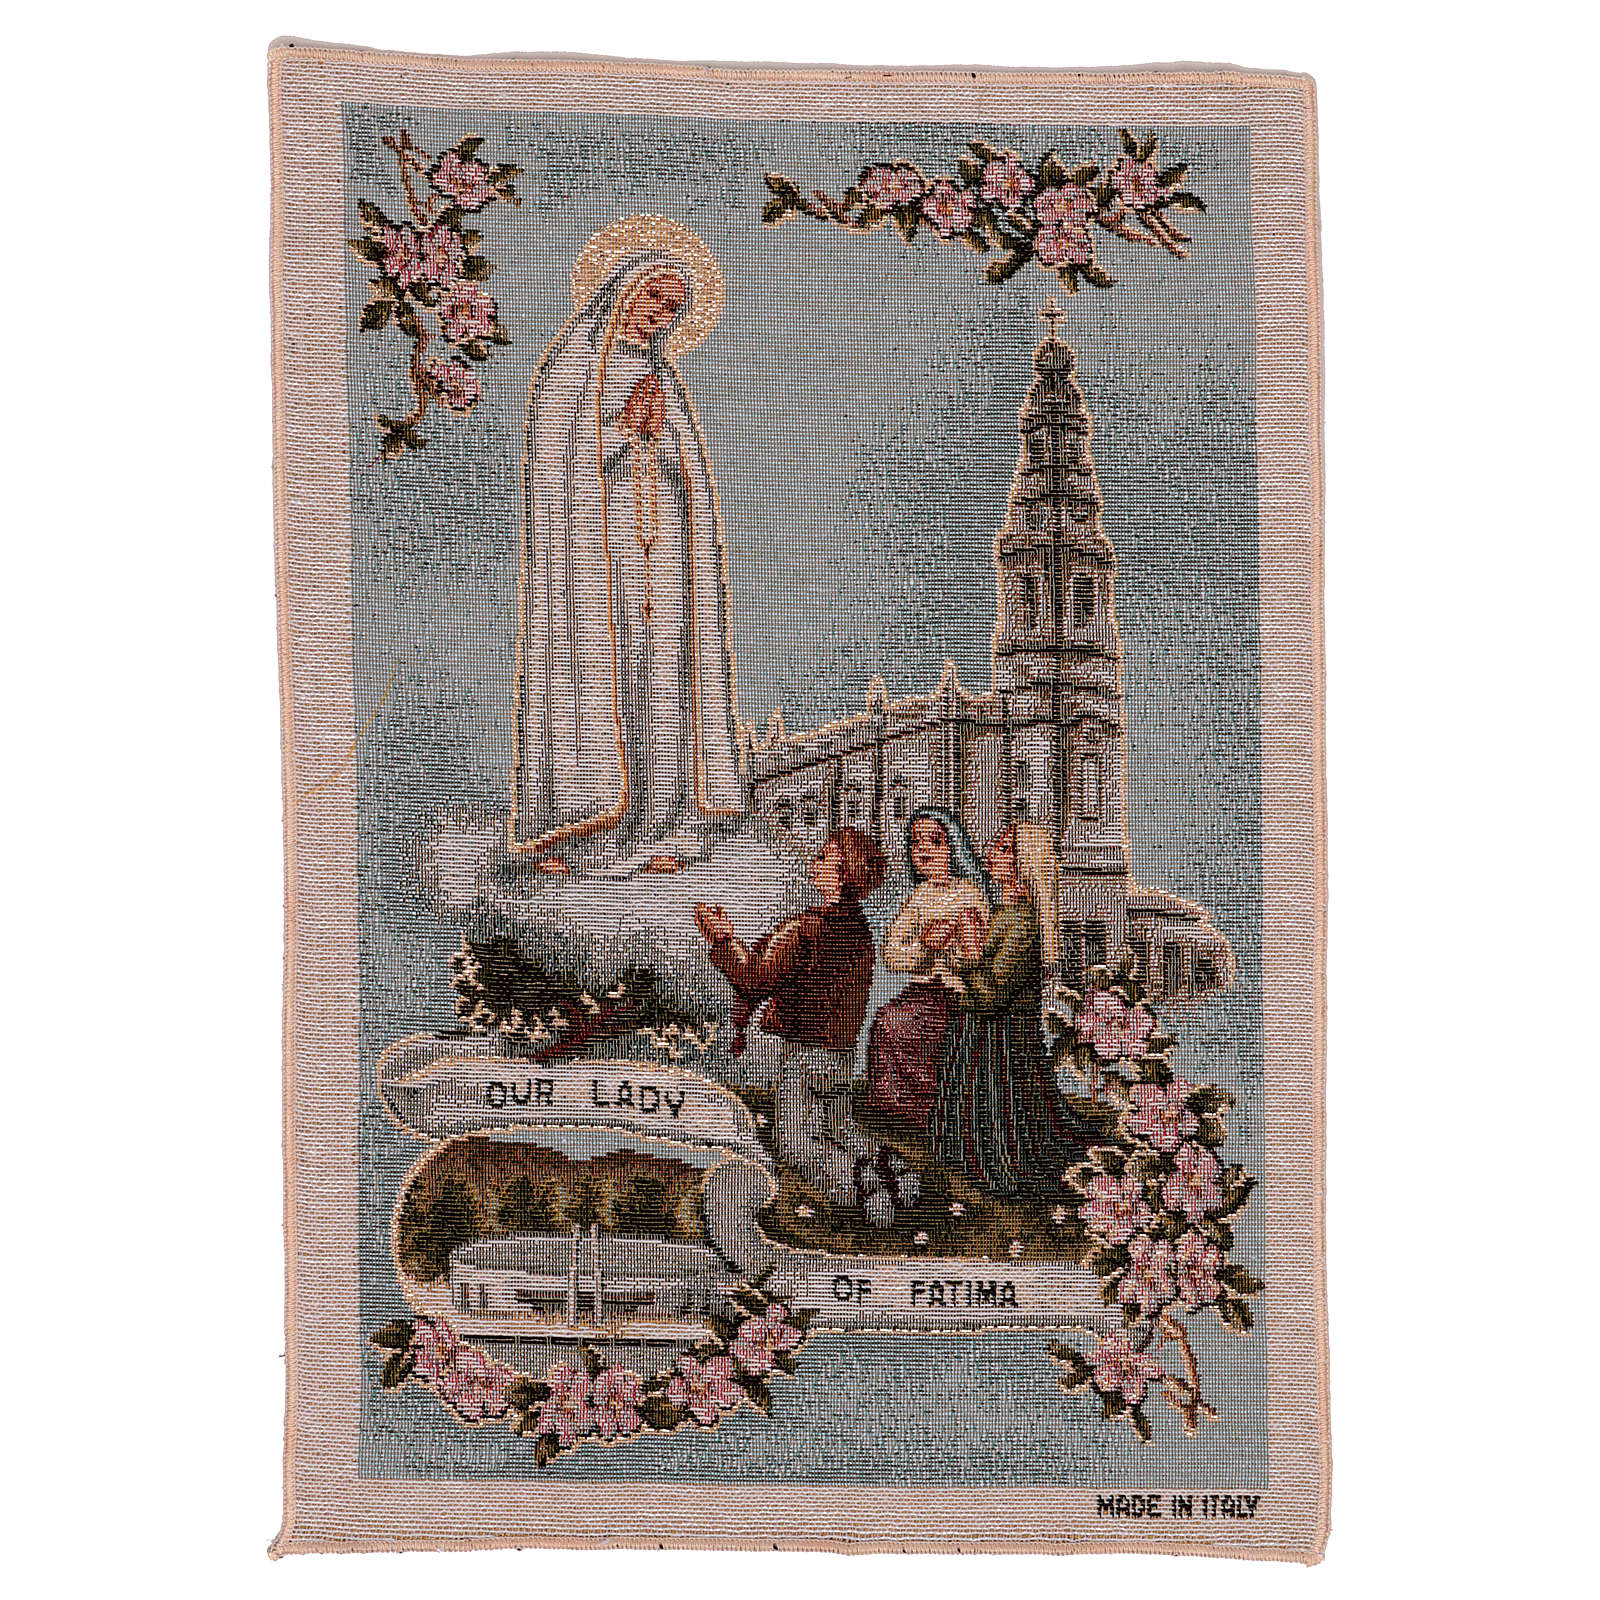 Our Lady of Fatima tapestry 16x12